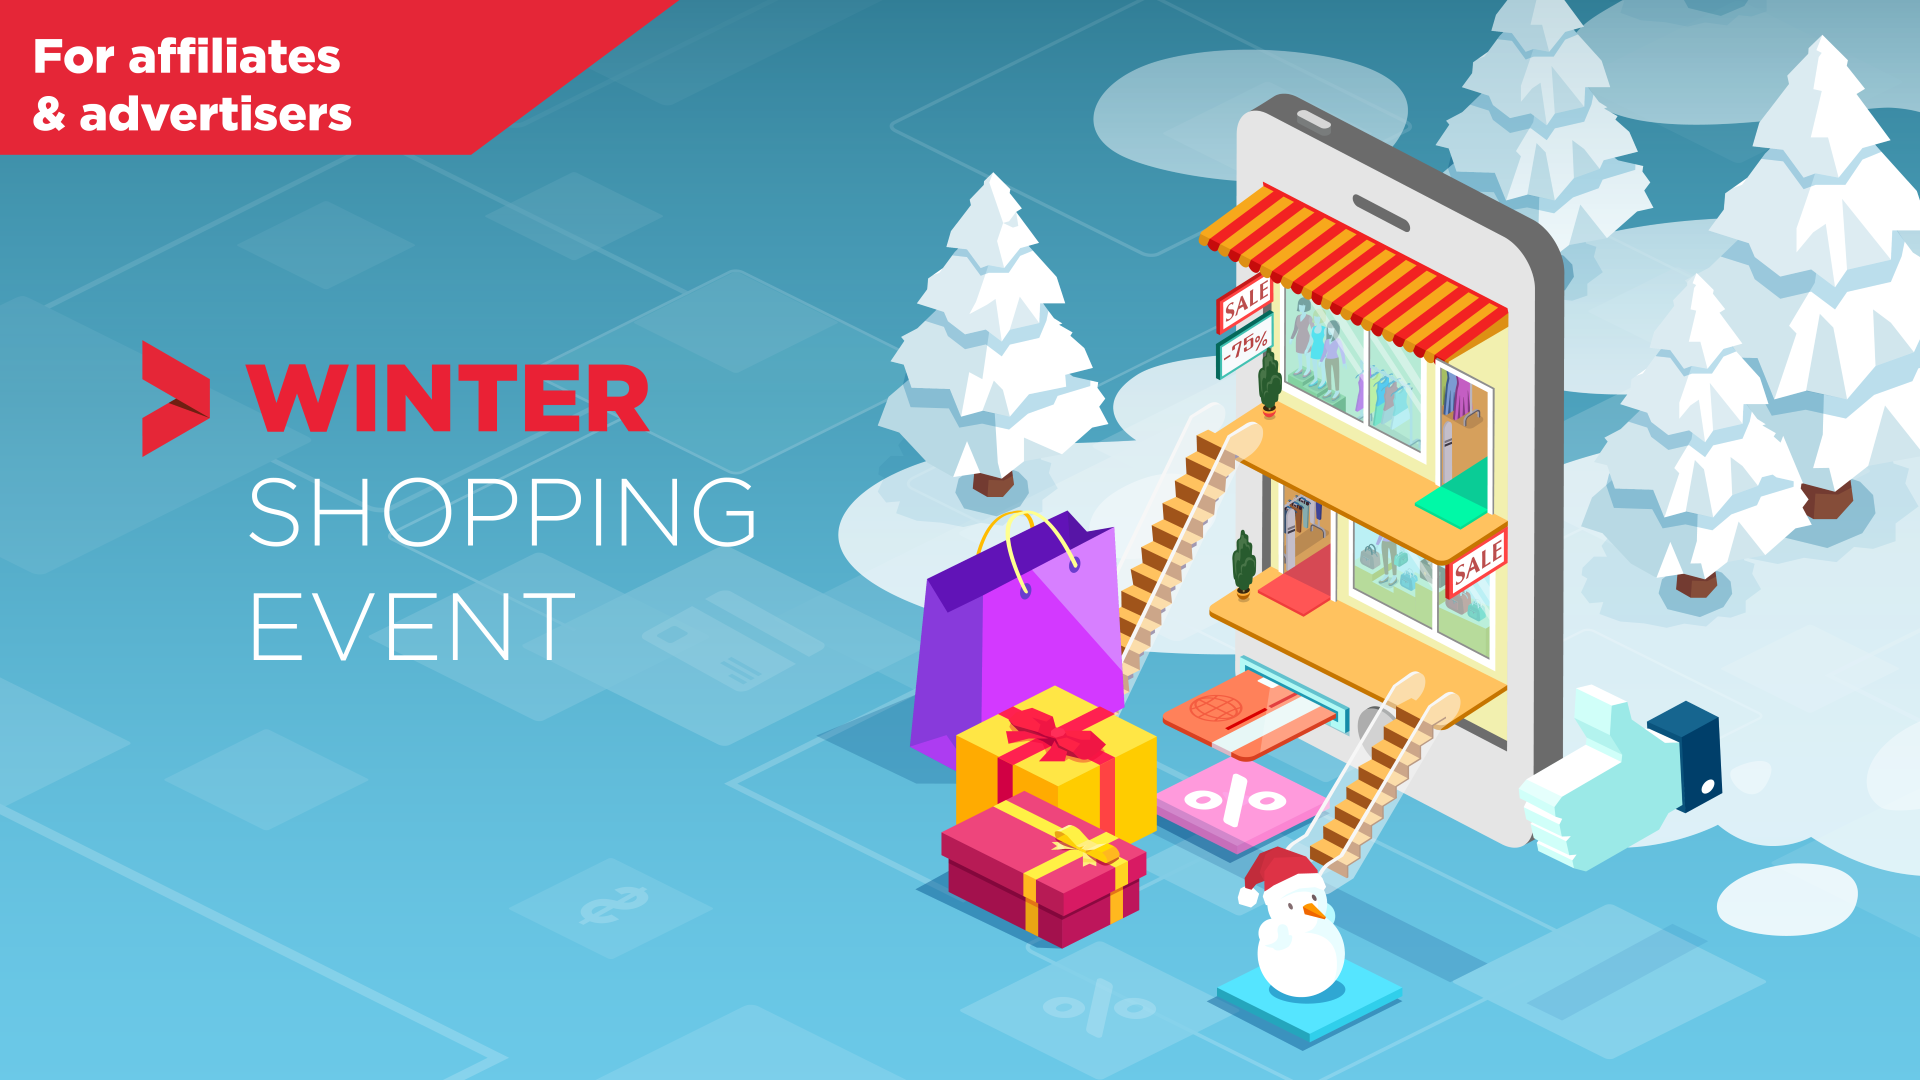 Winter Shopping Event